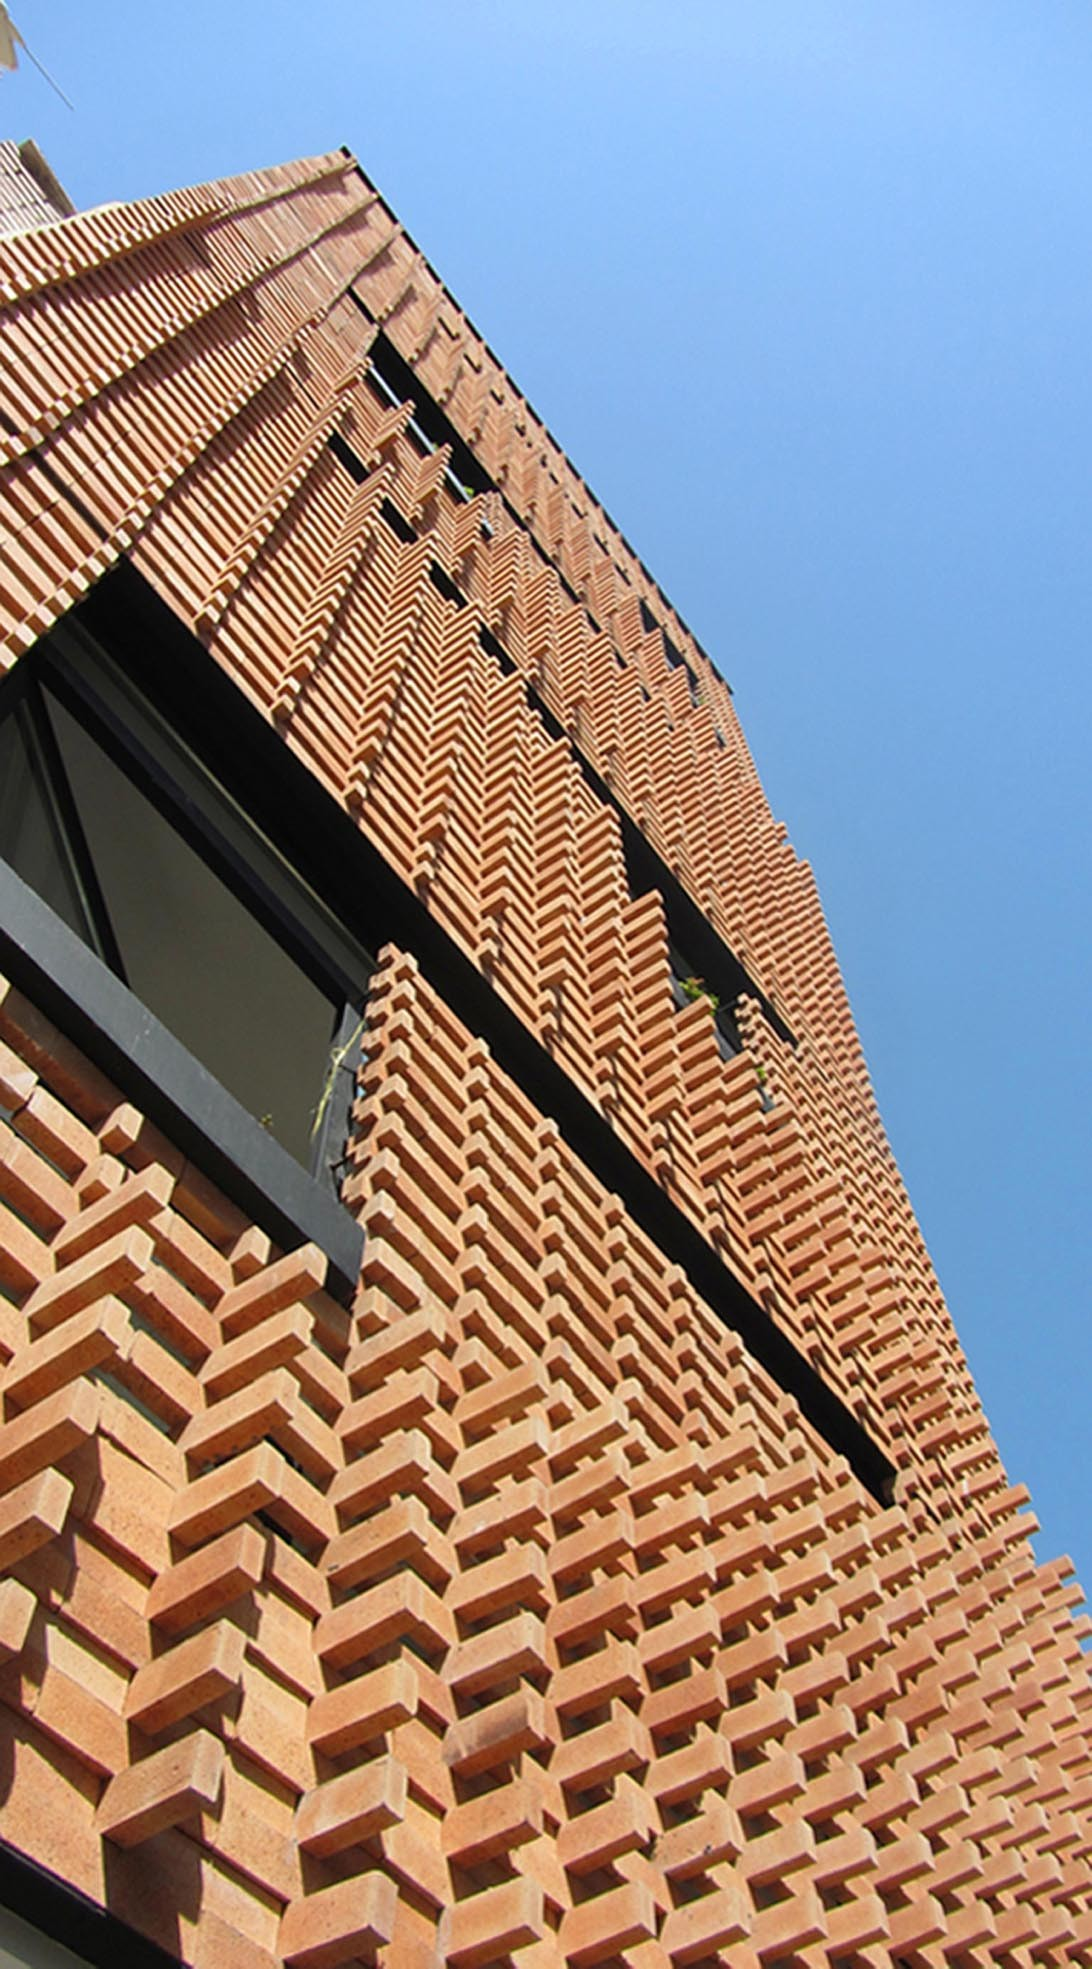 Gallery of brick pattern house alireza mashhadmirza 8 for Cool brick wall designs